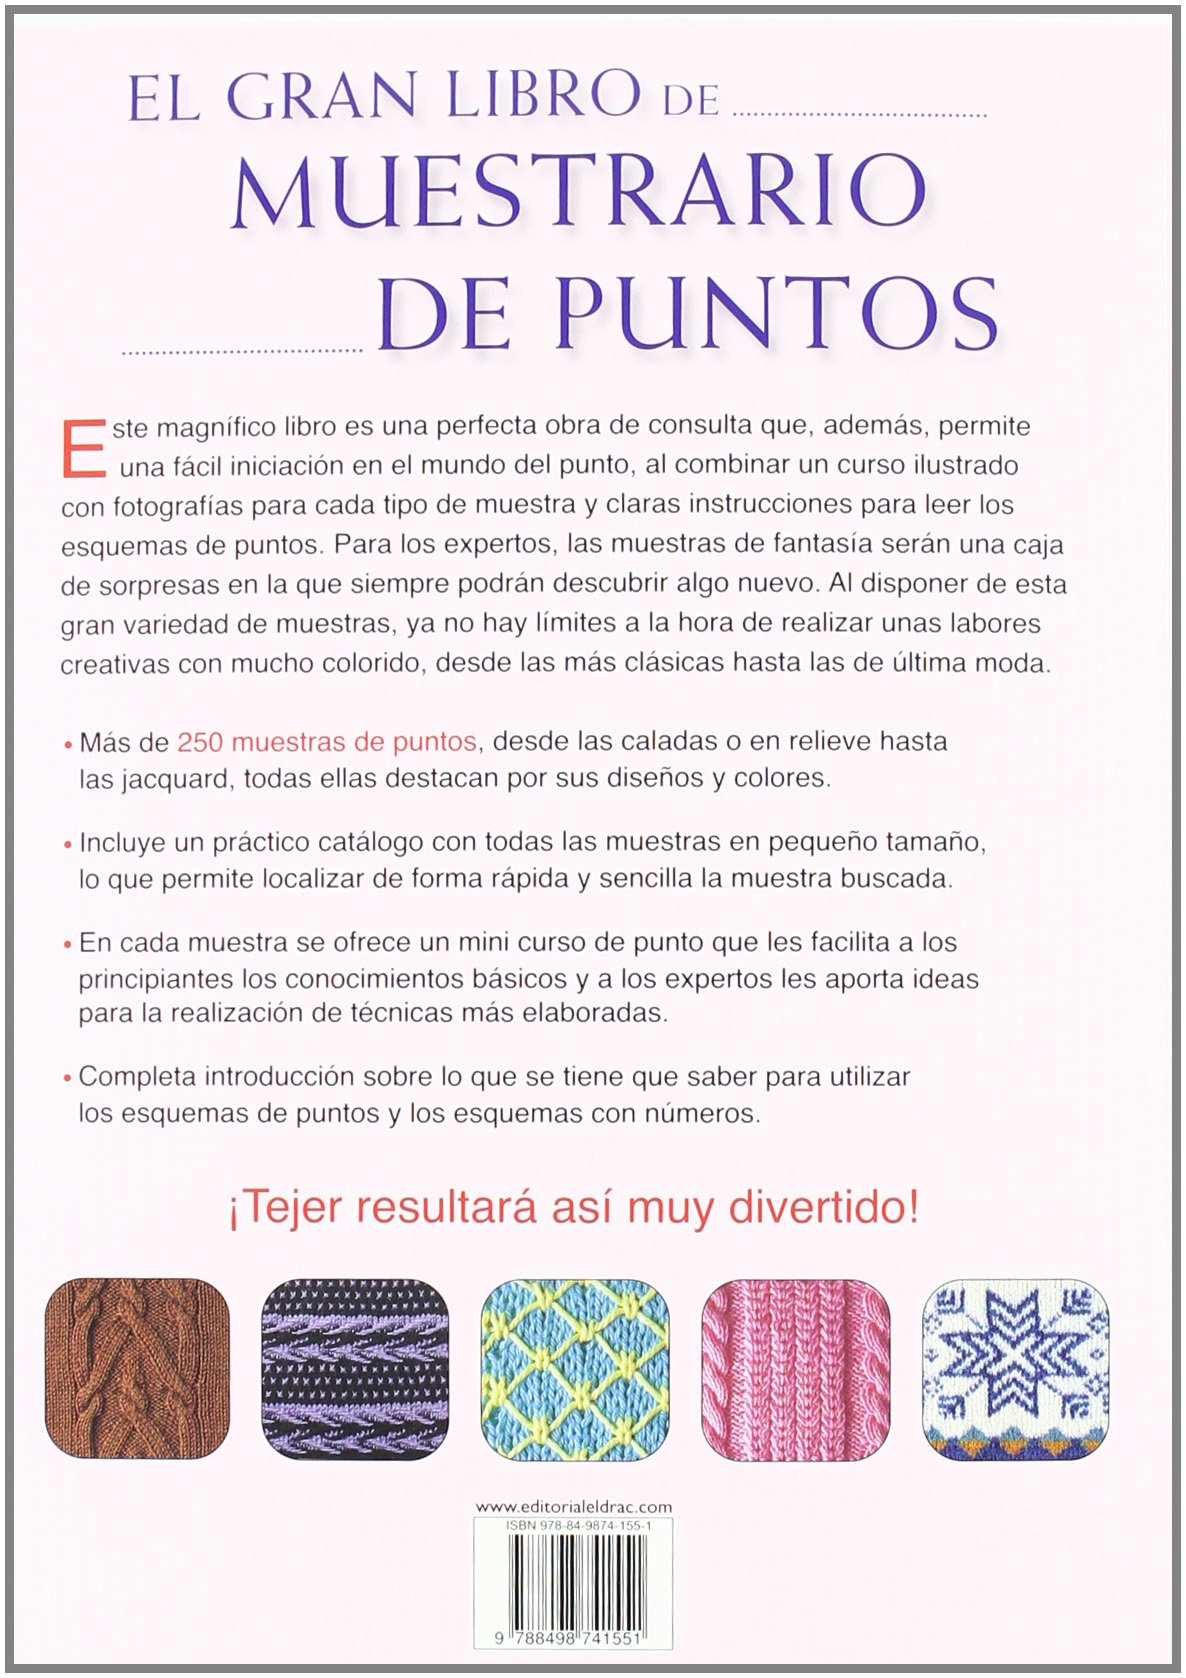 El gran libro de muestrario de puntos / The Great Book of Needlepoint Samples (Spanish Edition): Eva Domingo: 9788498741551: Amazon.com: Books